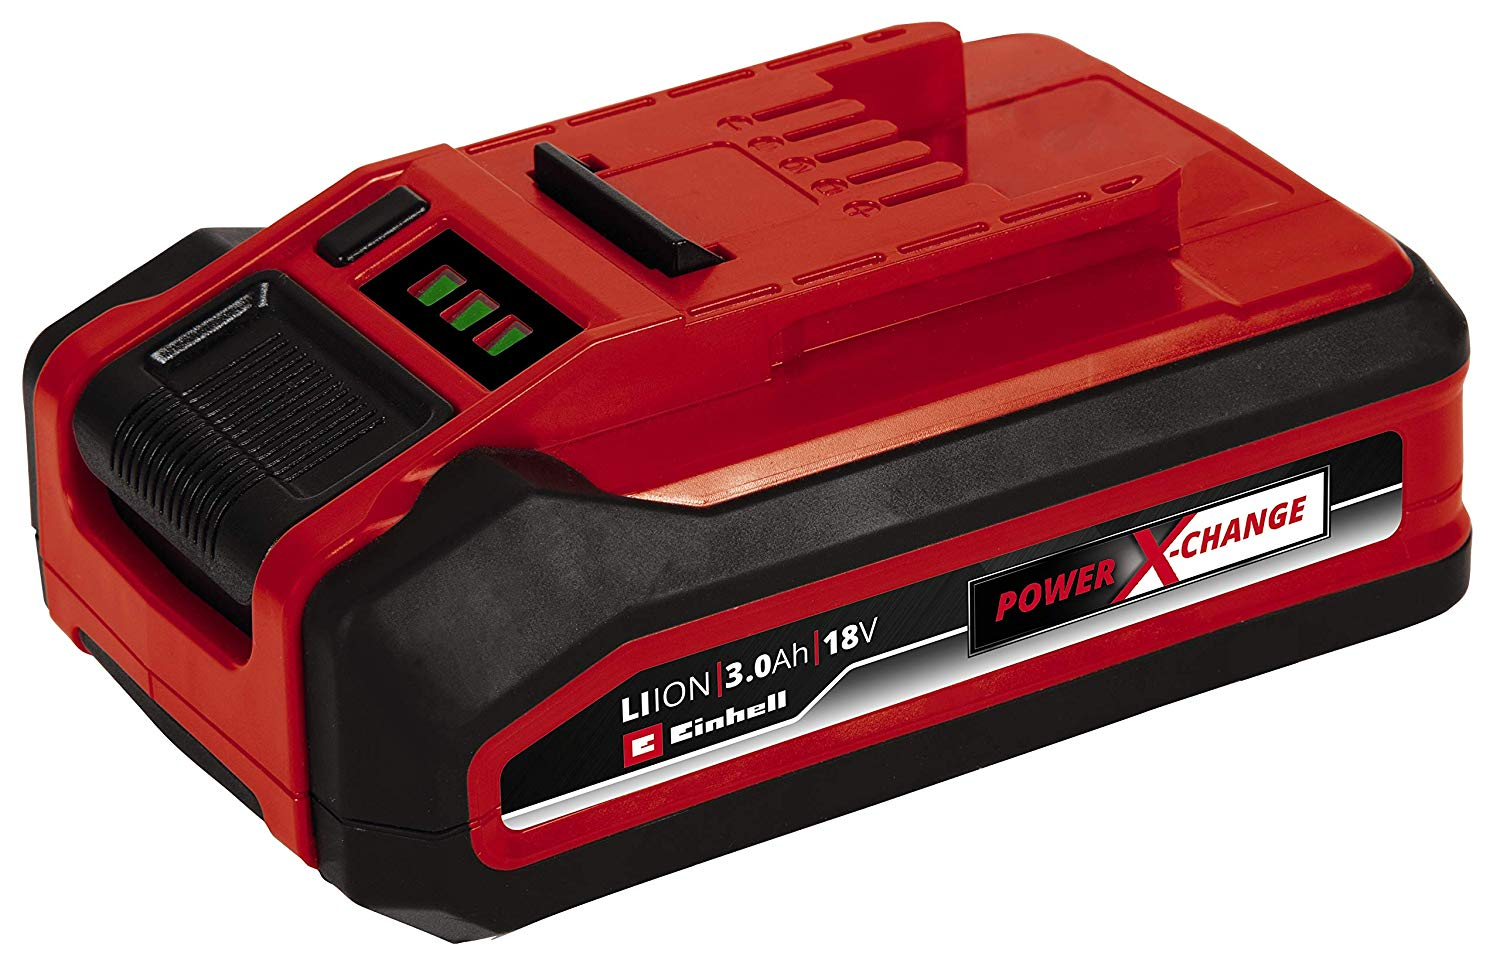 Batteria plus ioni di litio 18V 3AH per utensili Power X-Change Einhell